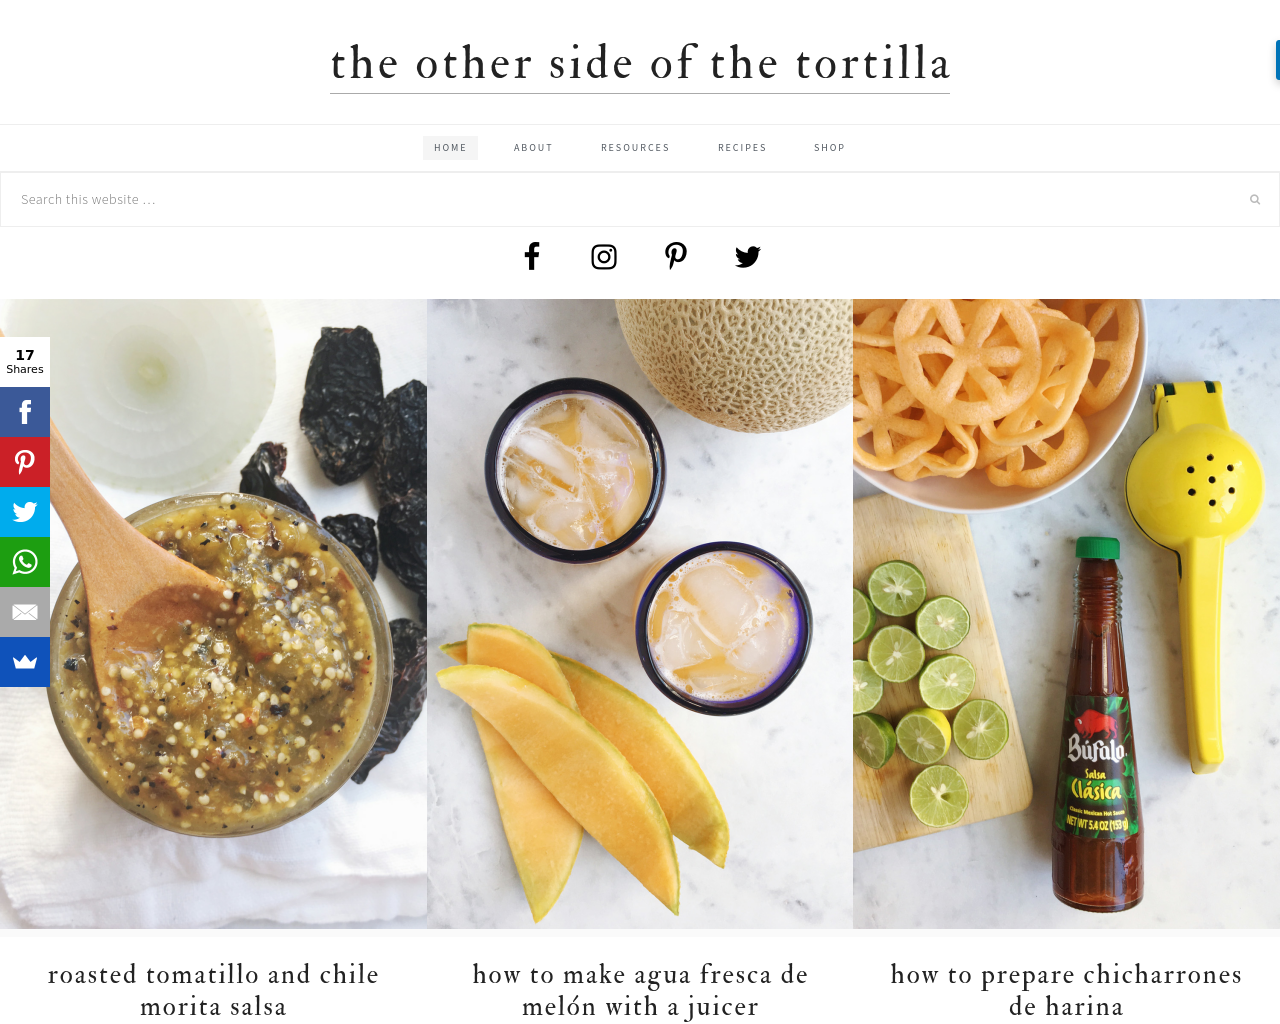 The-Other-Side-Of-The-Tortilla-Advertising-Reviews-Pricing